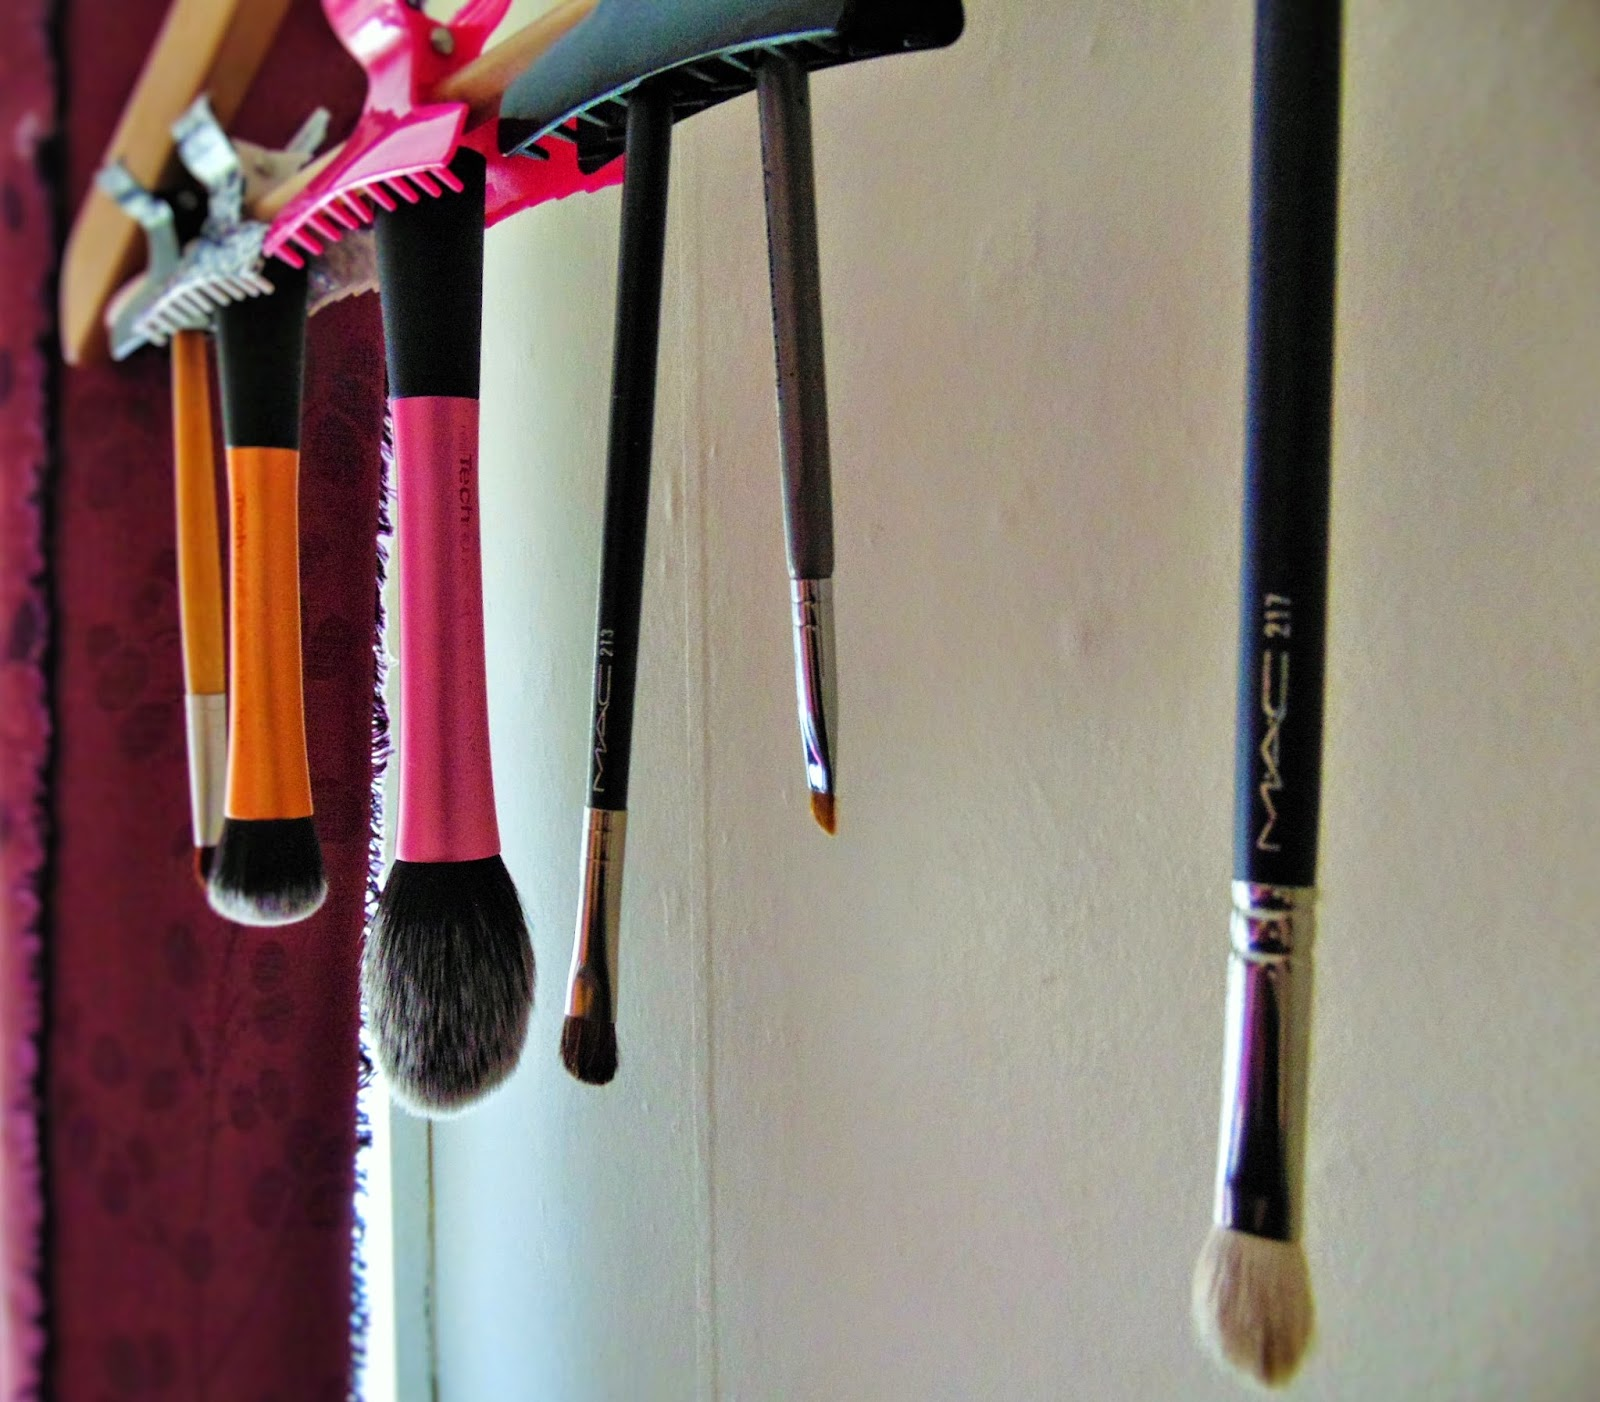 Tip of the week - the best way to dry your make up brushes mac217 mac213 real techniques eco tools